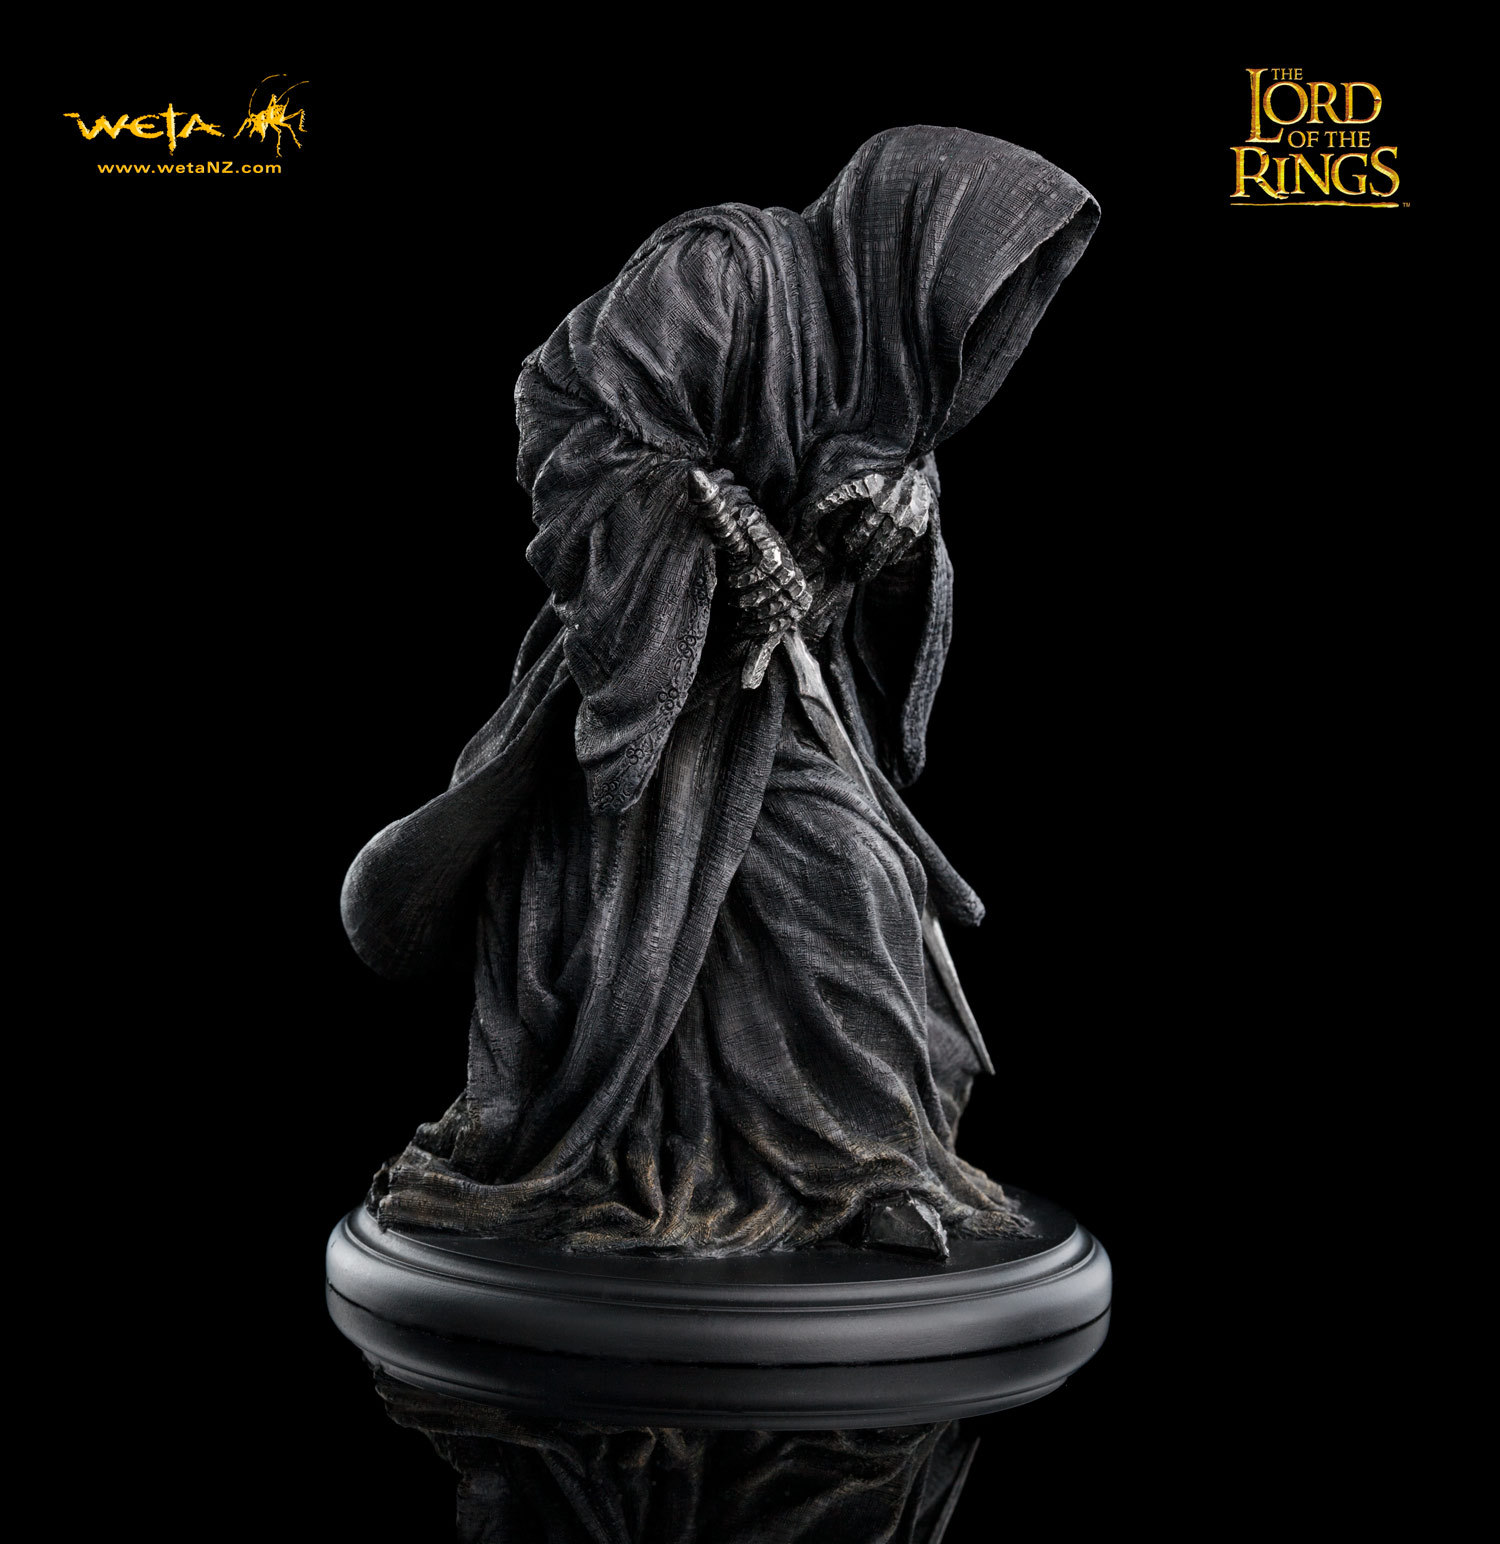 Lord of the Rings Ringwraith Mini Statue image